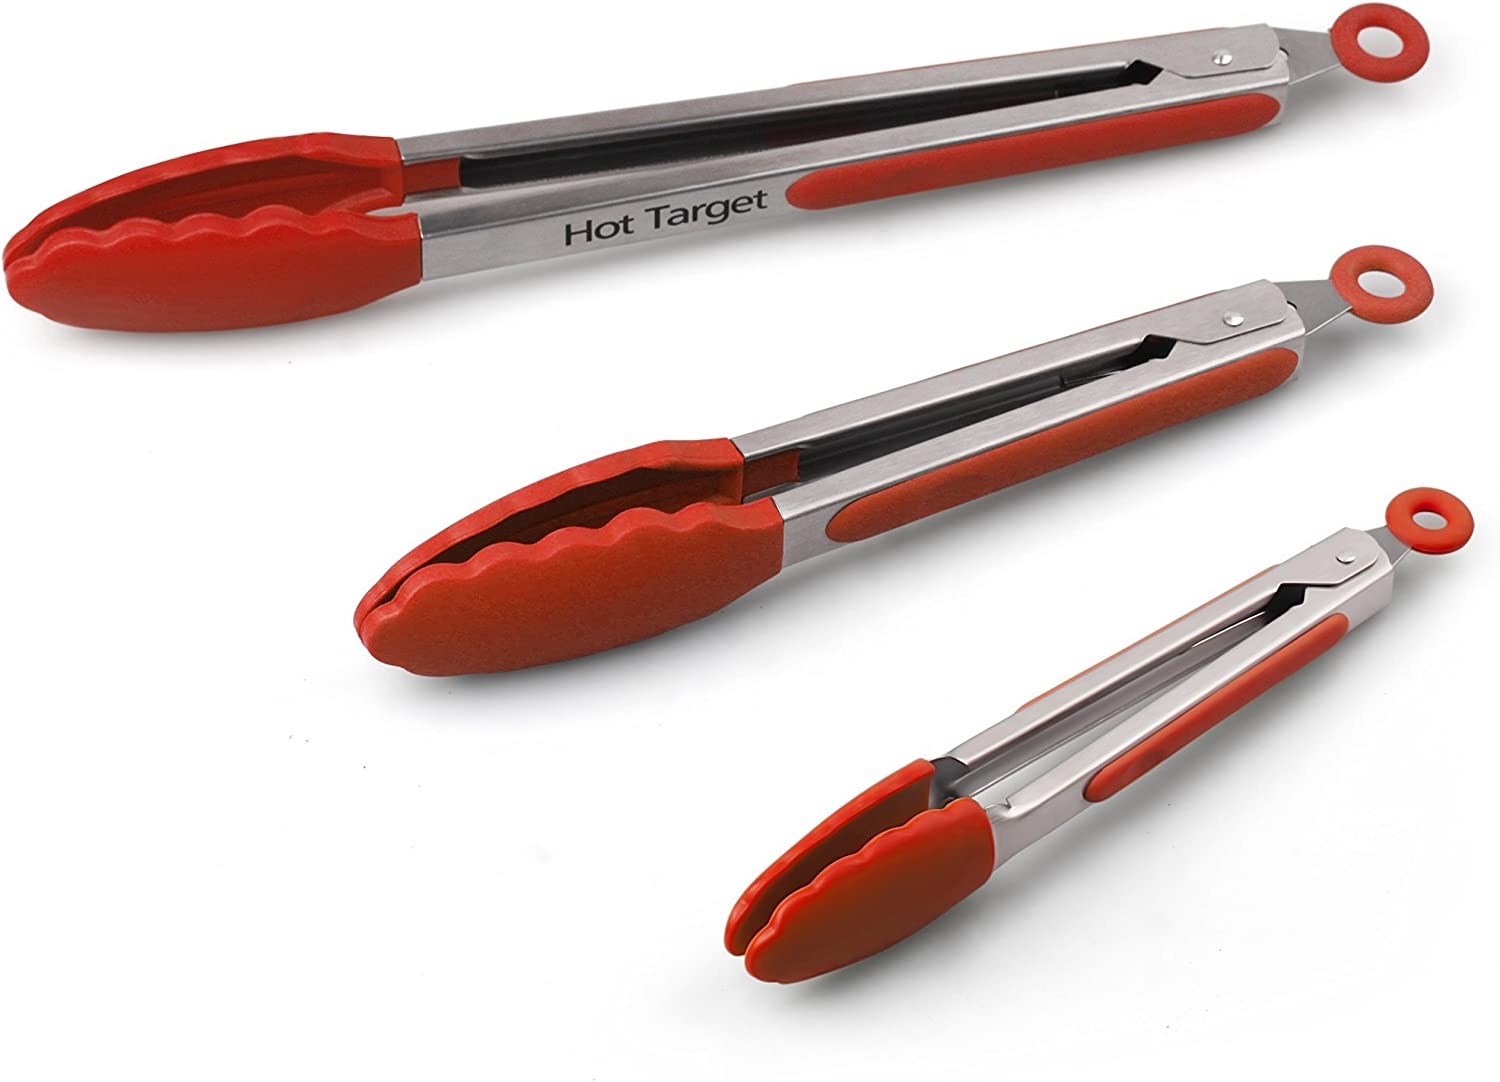 Hot Target Set of 3-7, 9, 12 inches, Red Color, Heavy Duty, Non-Stick, Stainless Steel Silicone BBQ and Kitchen Tongs. Heat resistant up to 600°F (3 COLORS AVAILABLE)